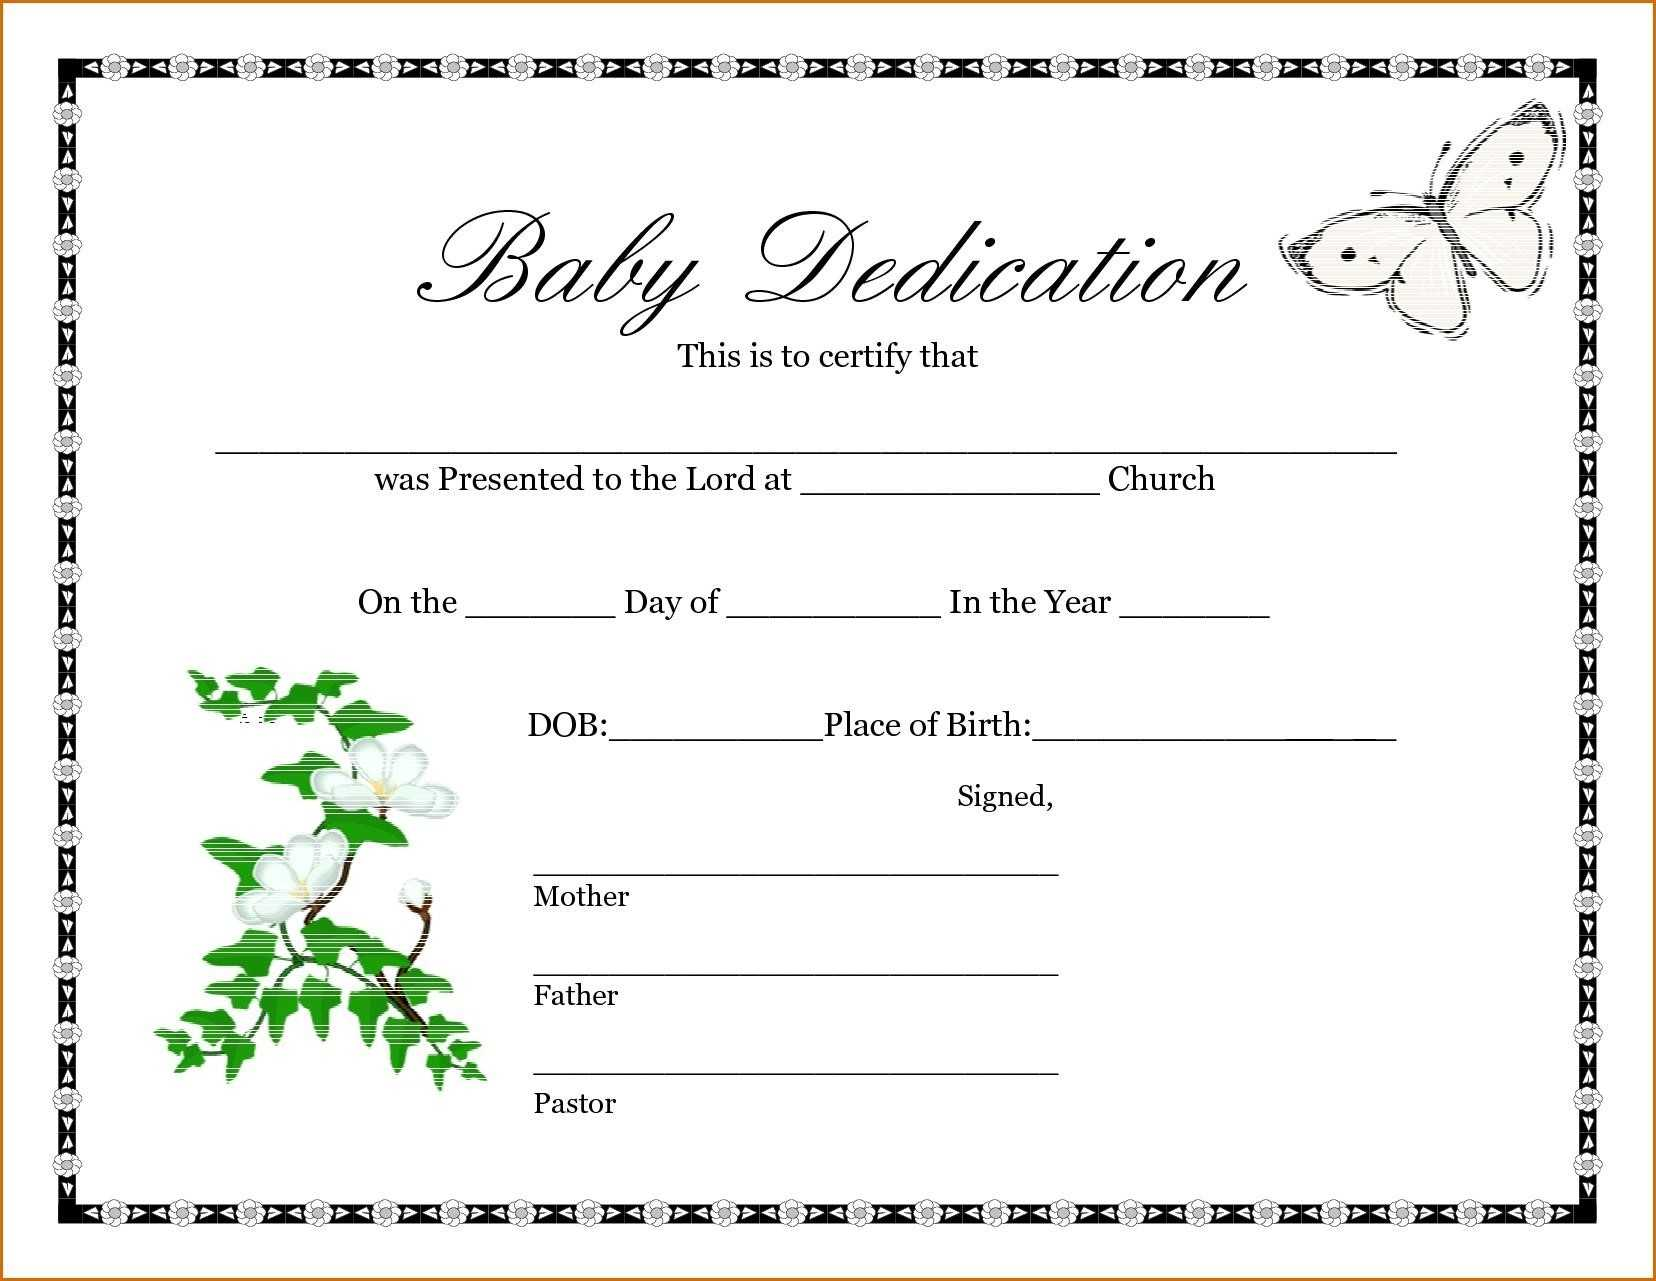 A Birth Certificate Template | Safebest.xyz For Build A Bear Birth Certificate Template